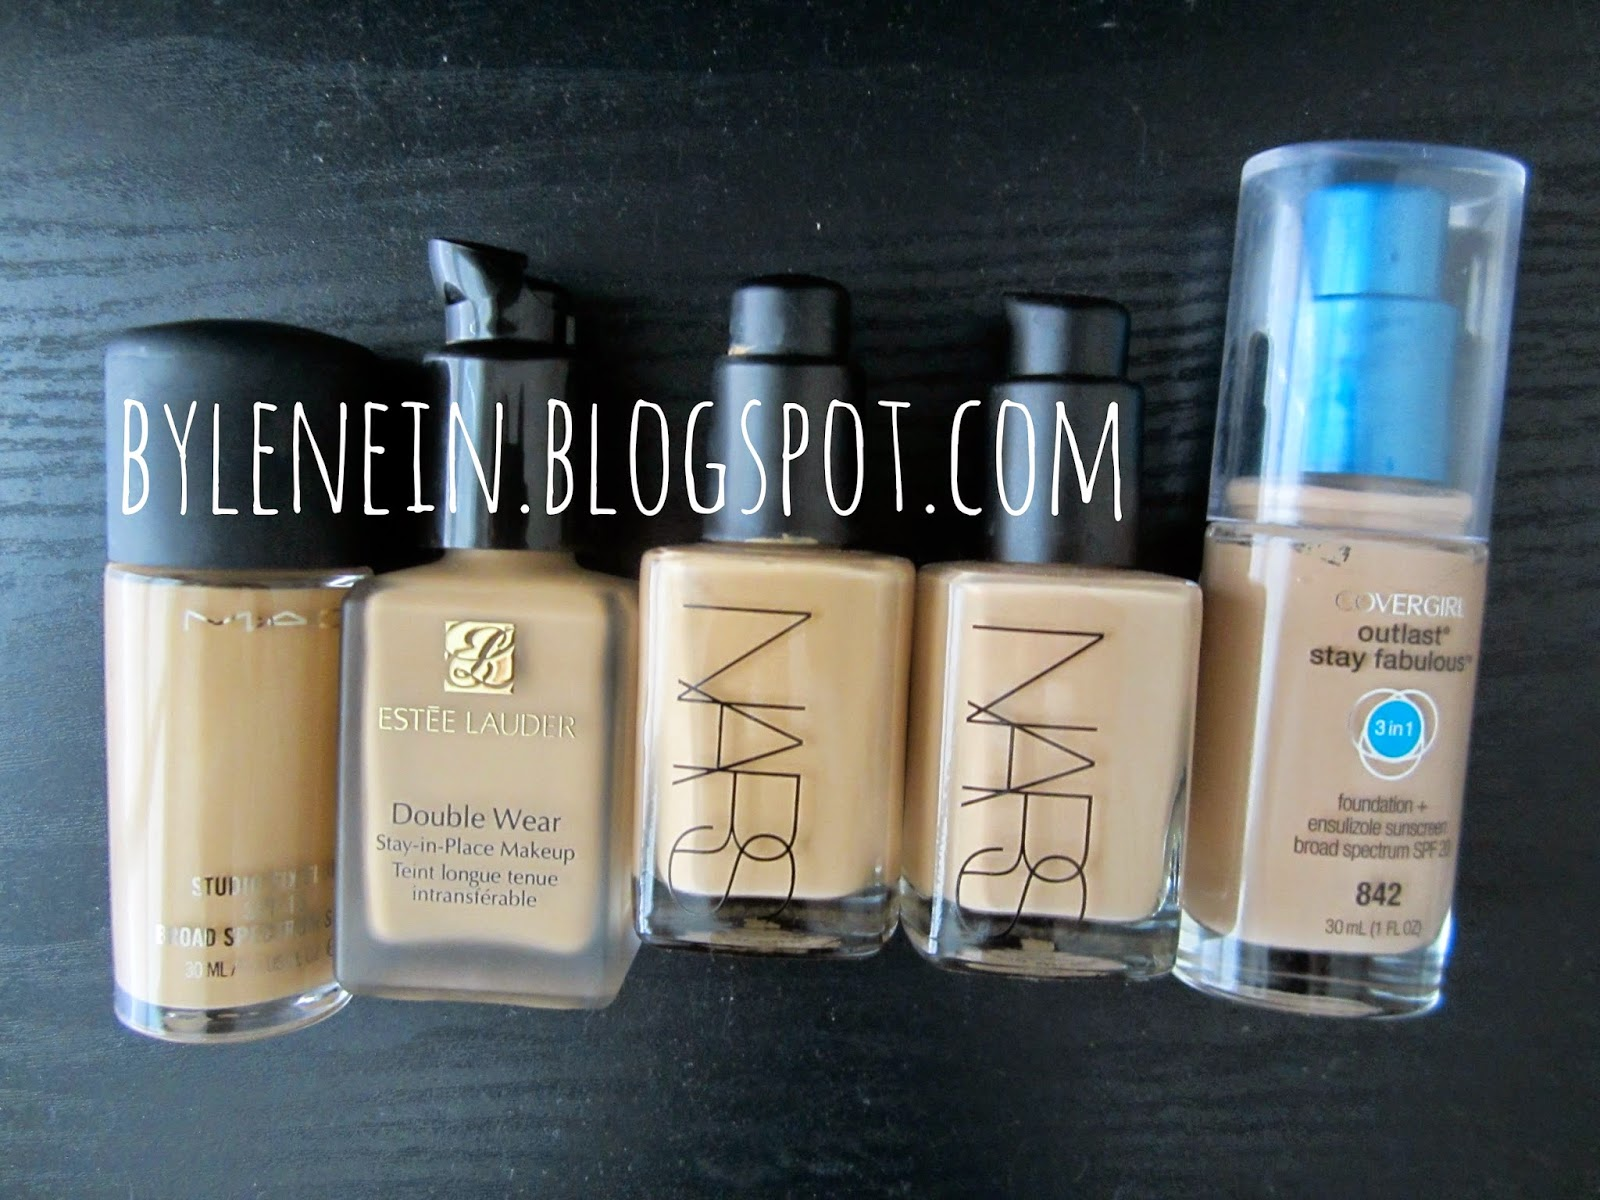 Nc foundation matches for estee lauder double wear nars sheer glow and covergirl outlast stay fabulous in also by lenein rh byleneinspot